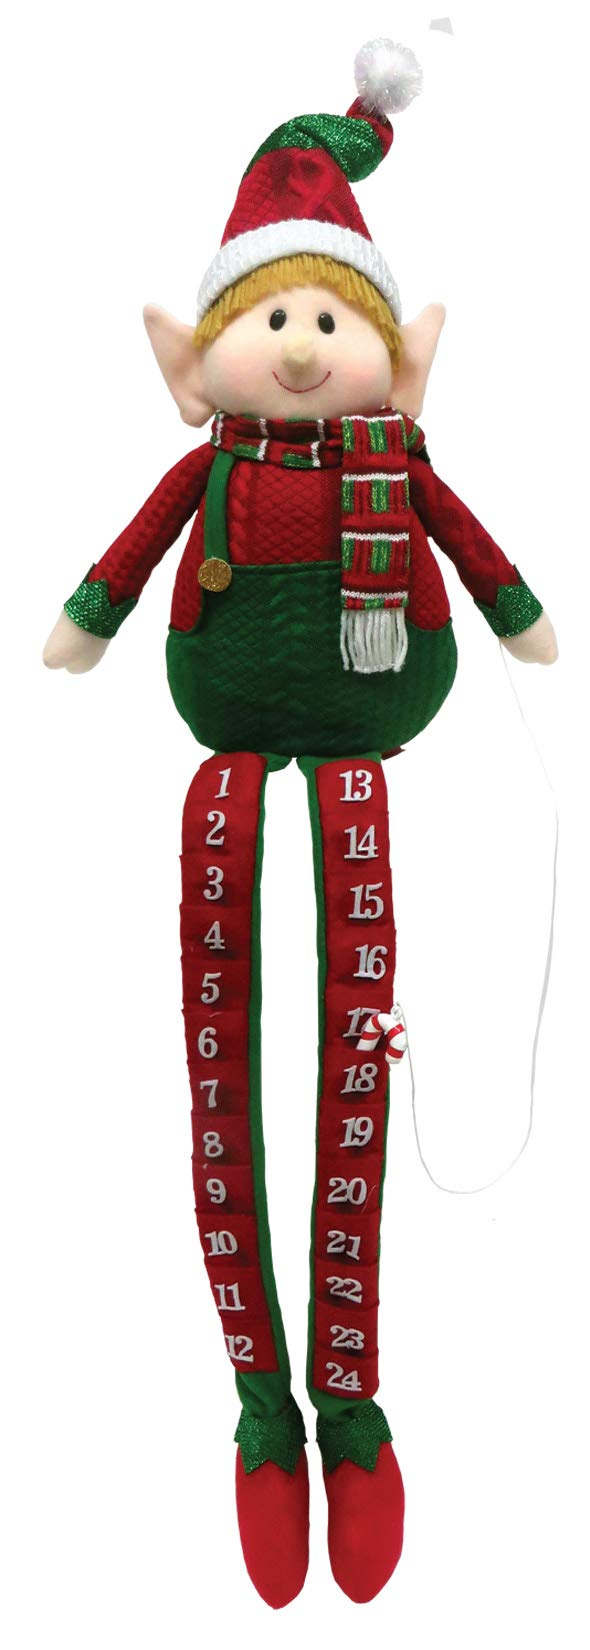 Santa's Workshop Elf Countdown Plush, 36'' Tall, Red/Green/White